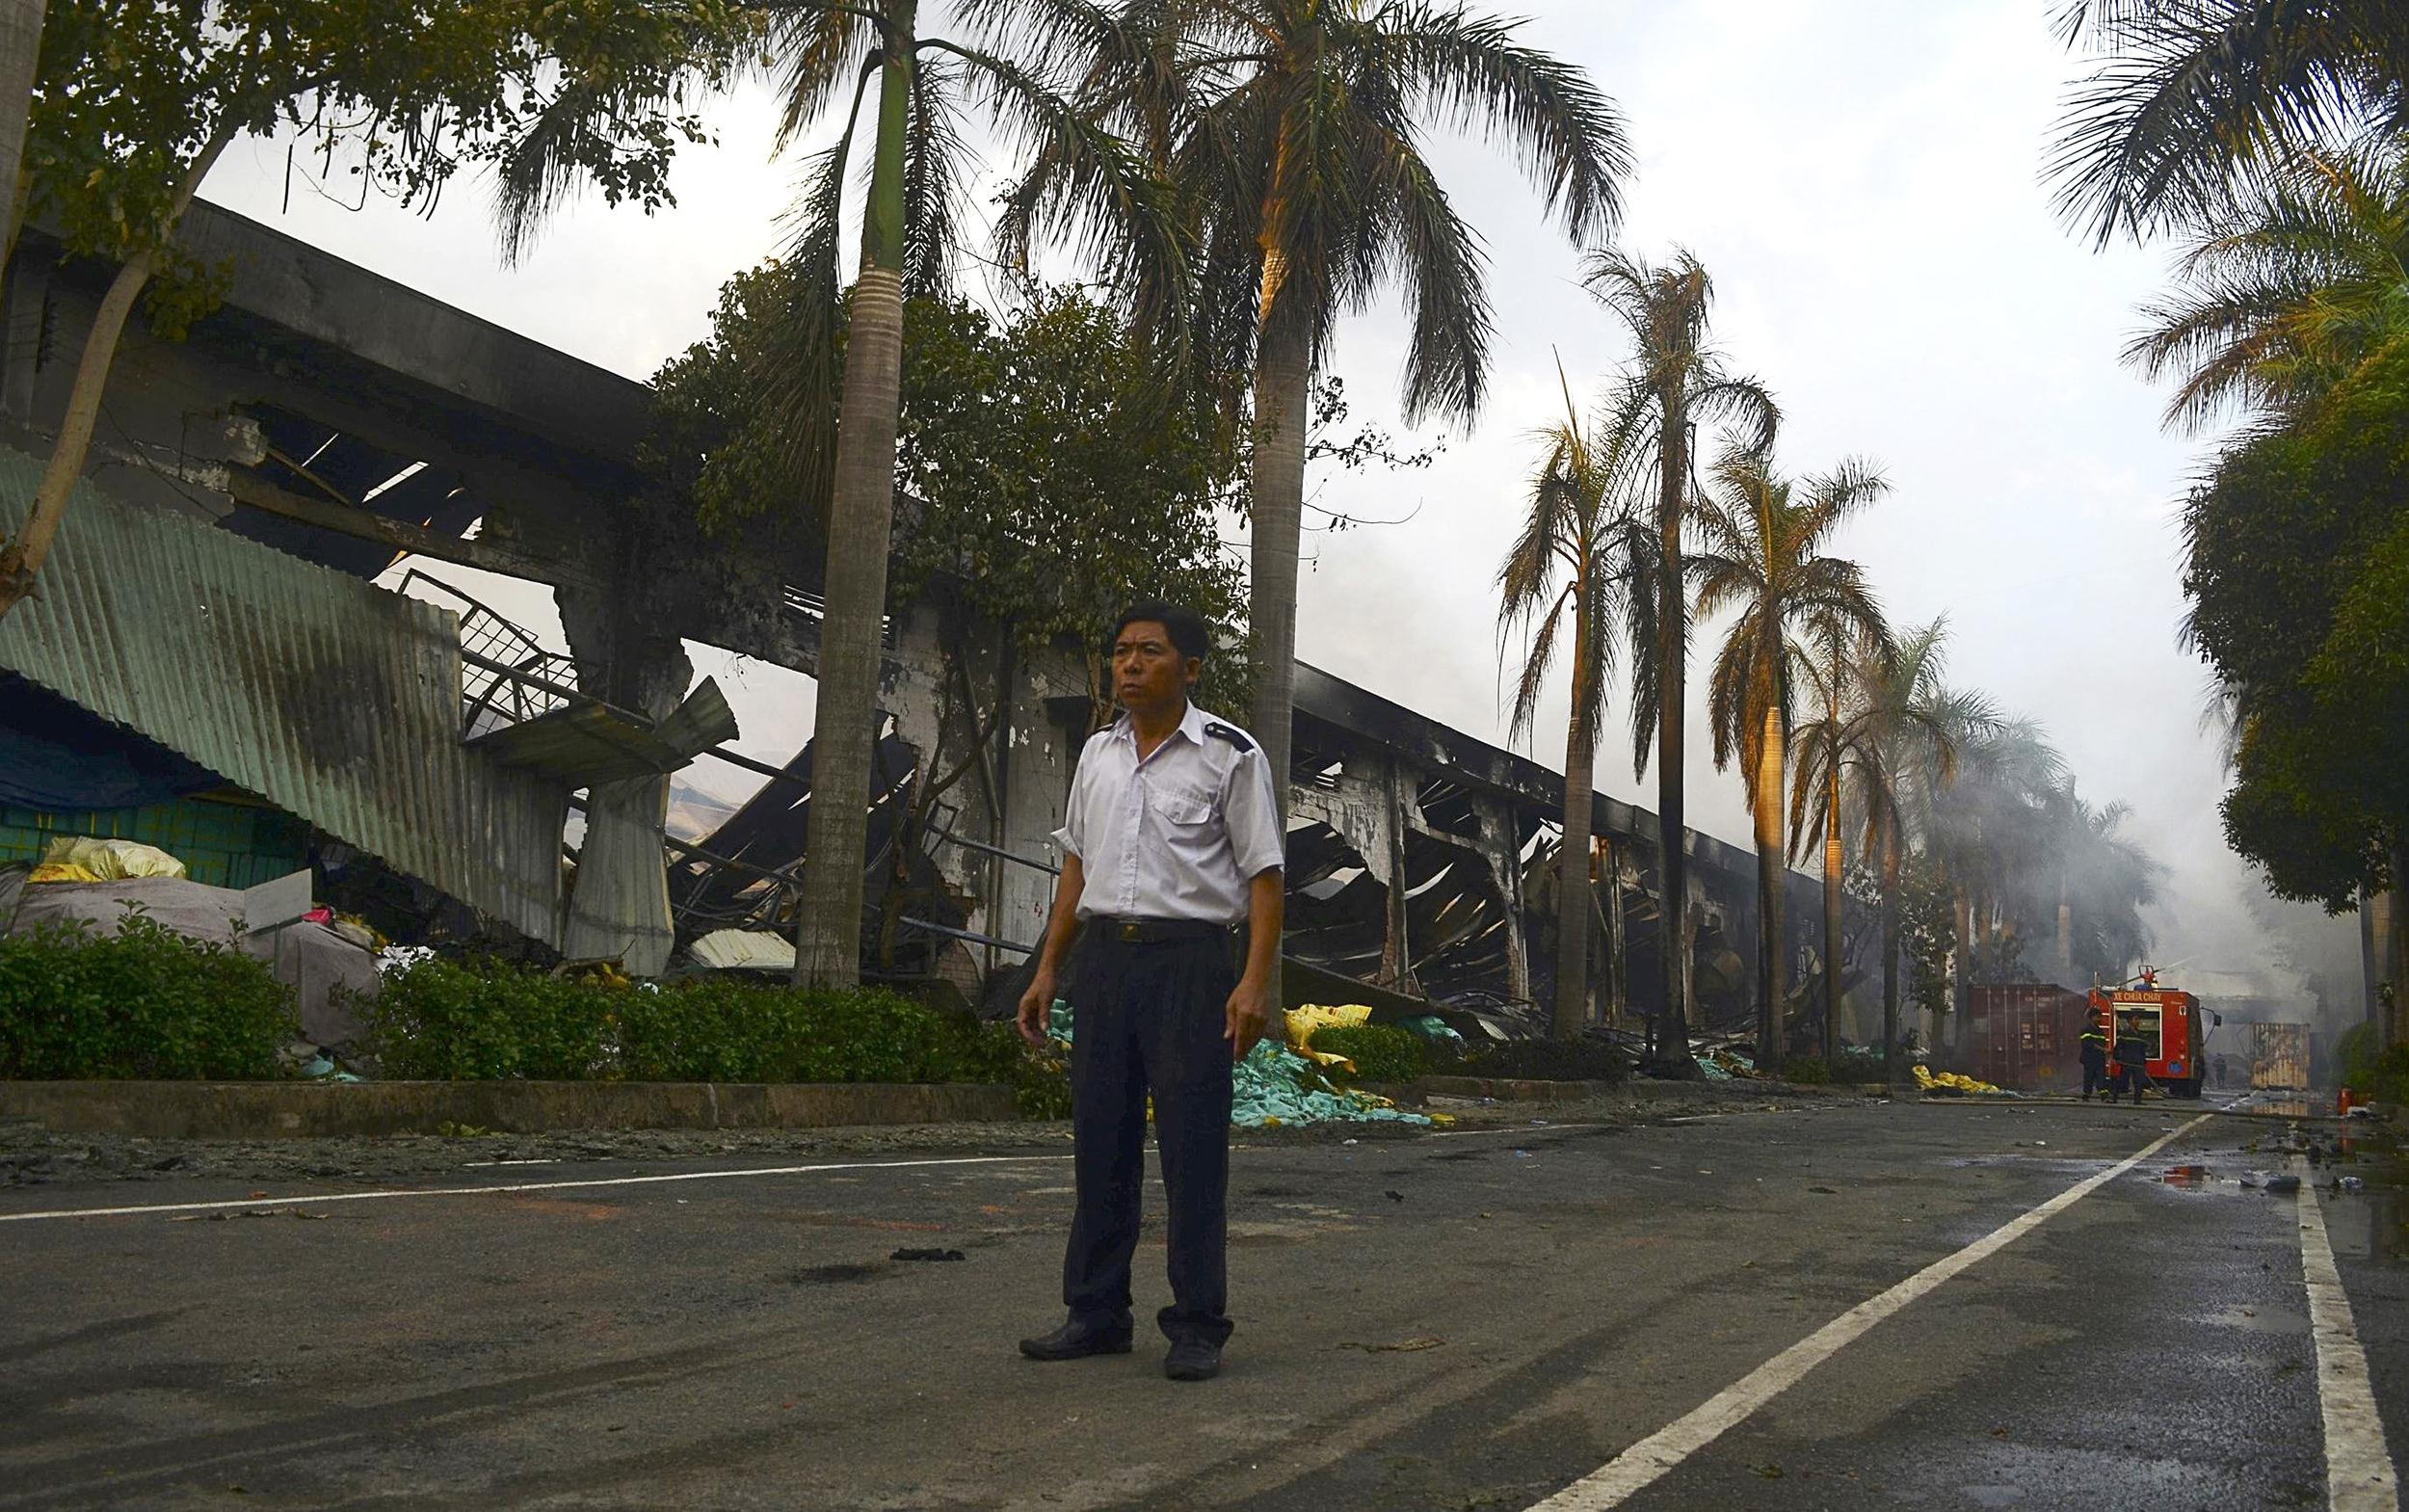 Image: A security guard stands near a damaged Chinese owned shoe factory in Vietnam's southern Binh Duong province